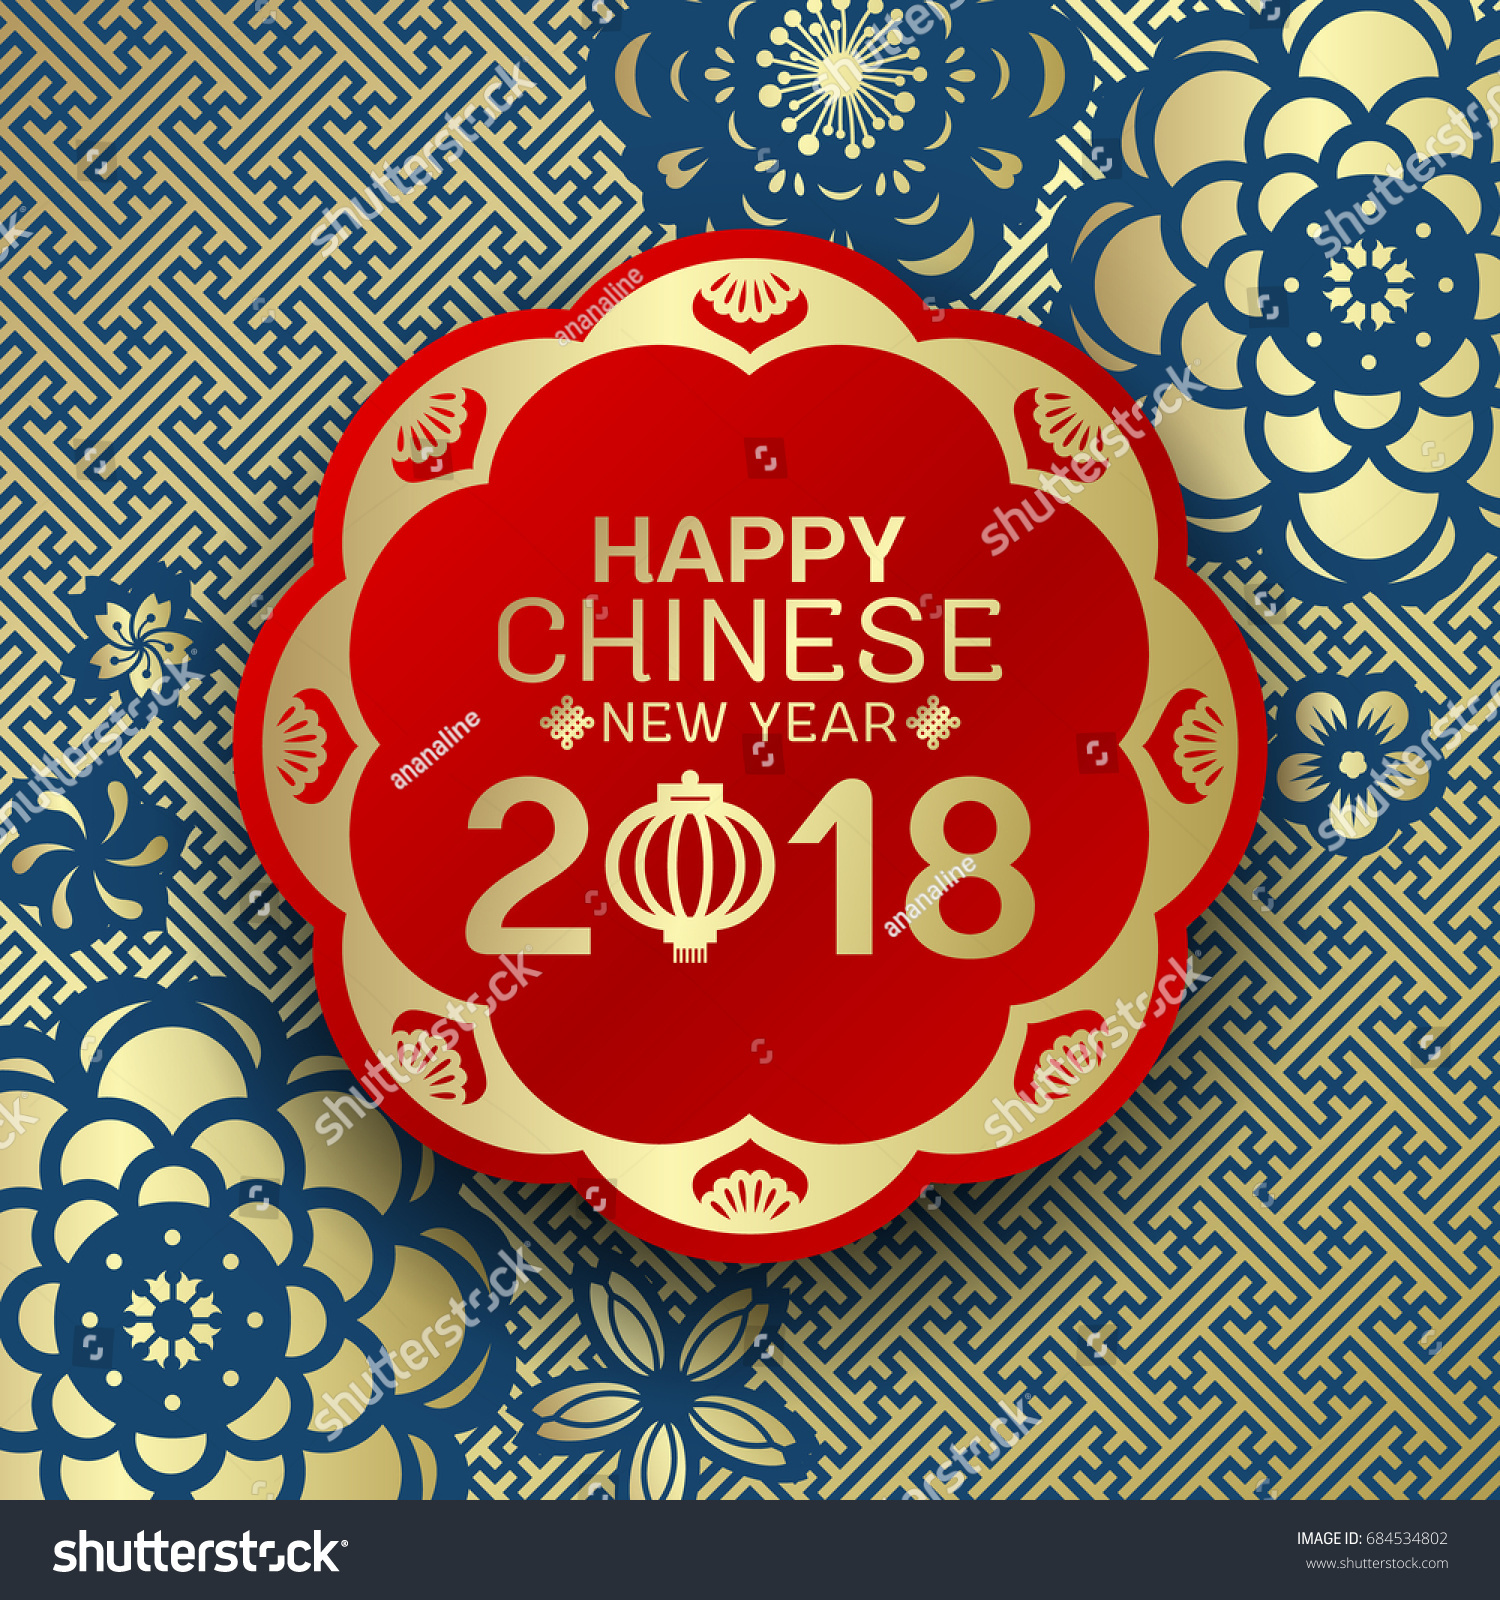 happy chinese new year 2018 text on red circle banner and blue gold flower china pattern